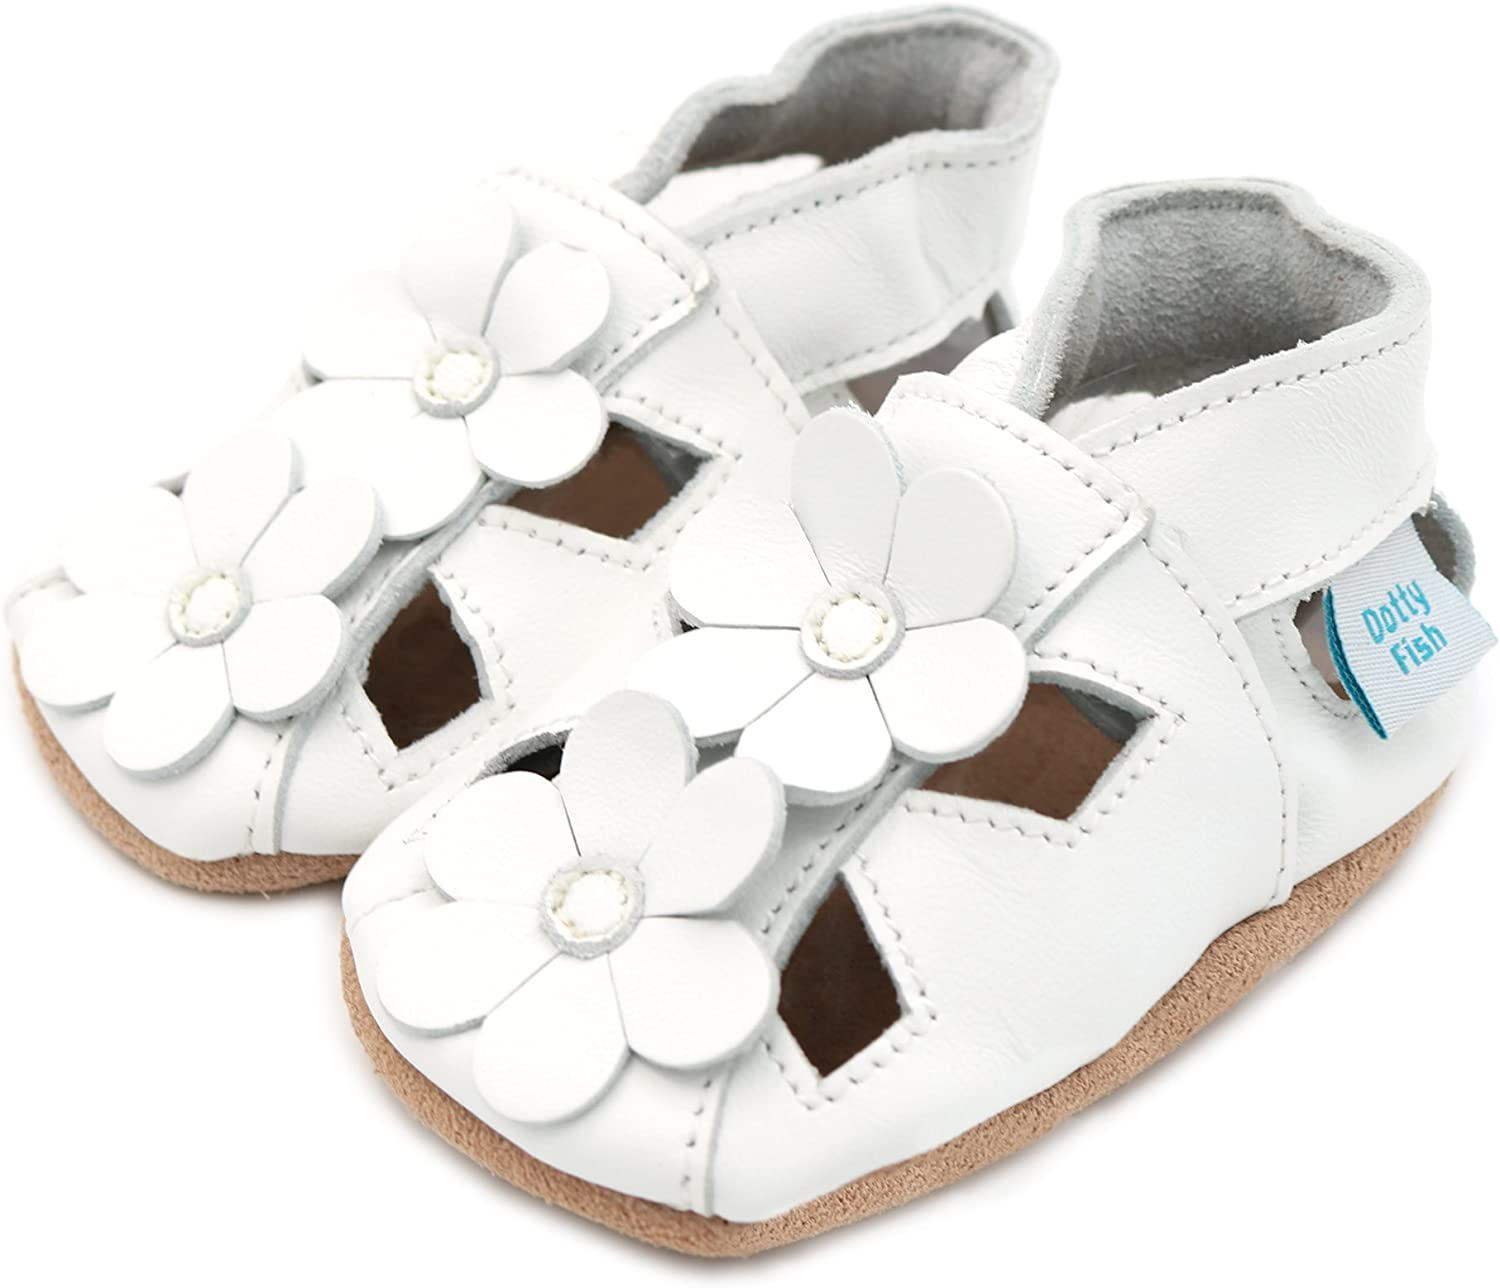 Dotty Fish Soft Leather Baby Shoes with Suede Soles 0-6 Months to 2-3 Years Non-Slip Toddler Flower Sandals